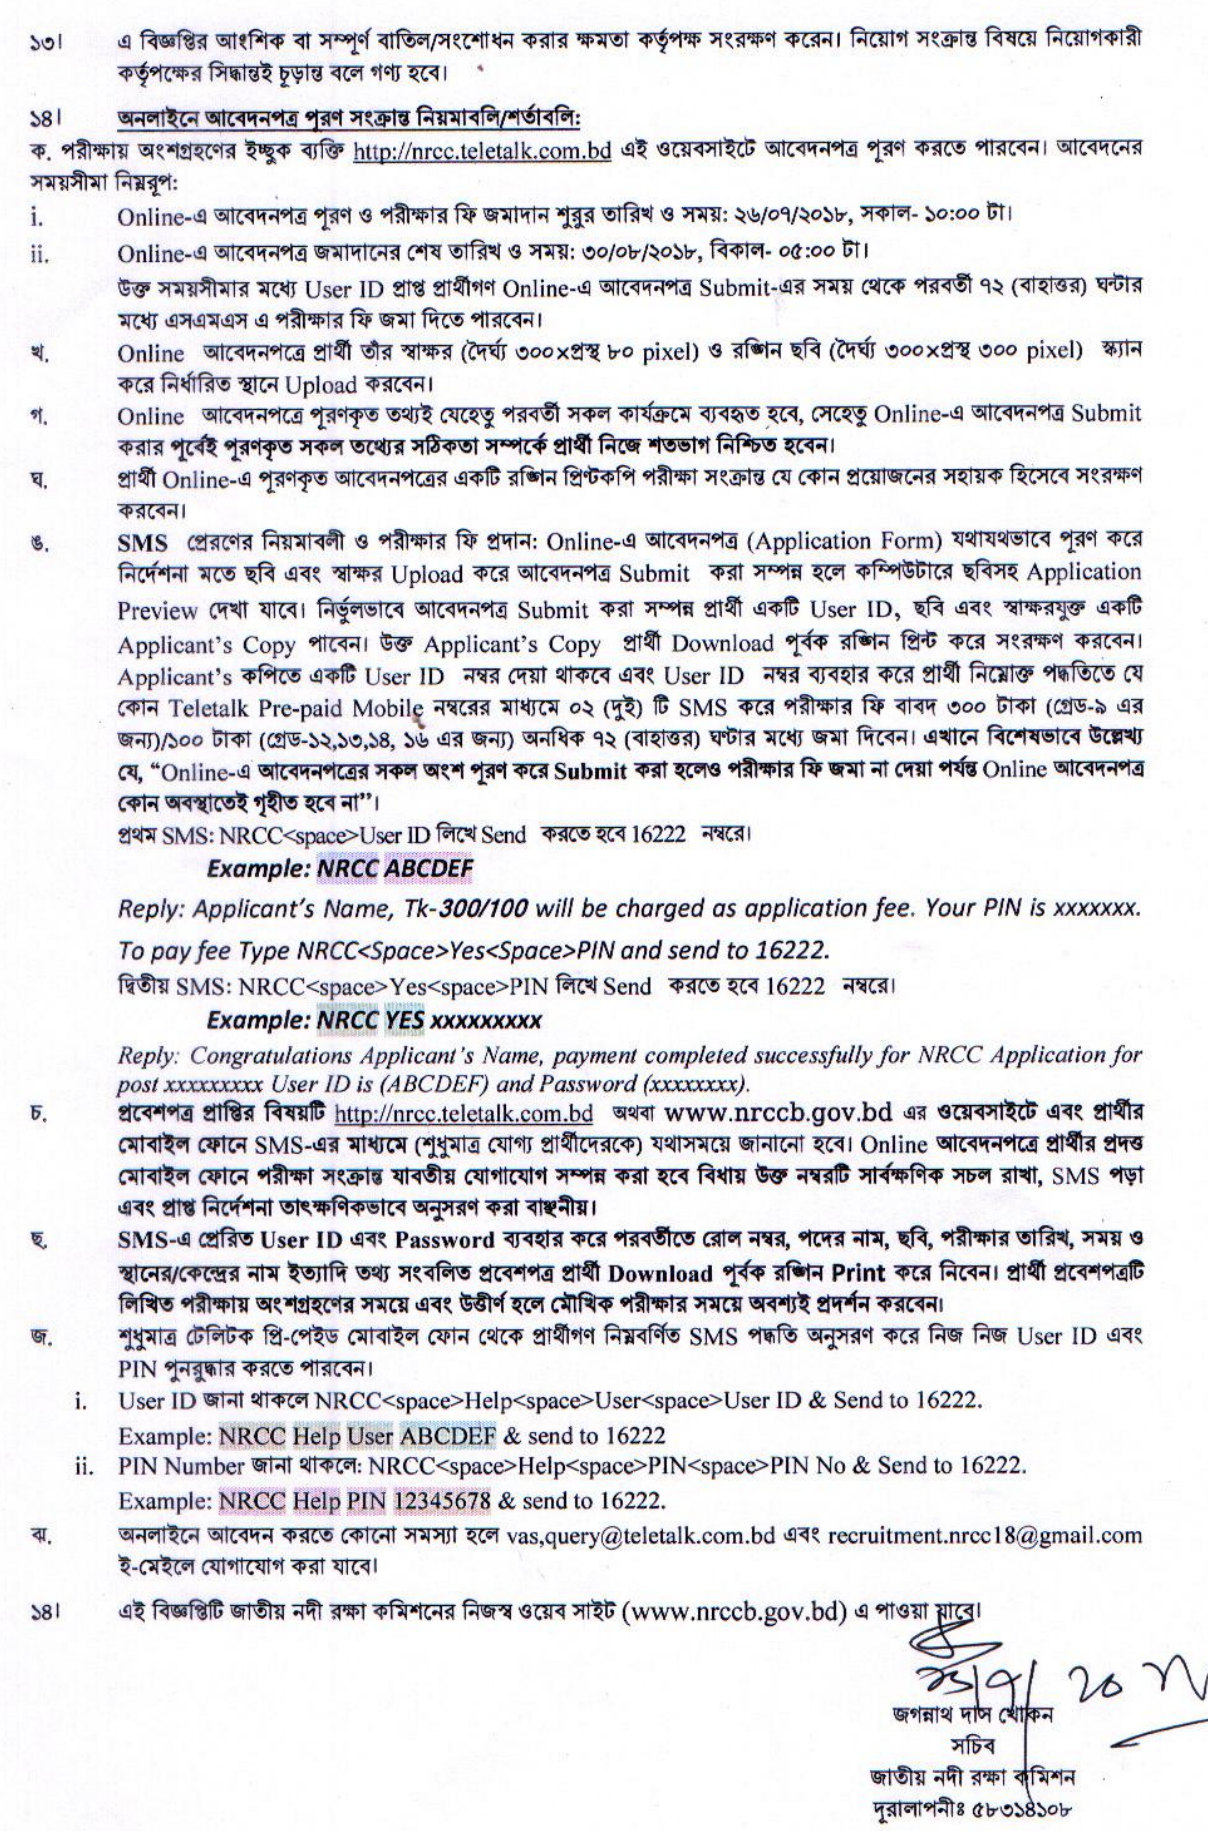 National River Conservation Commission NRCCB Job Circular